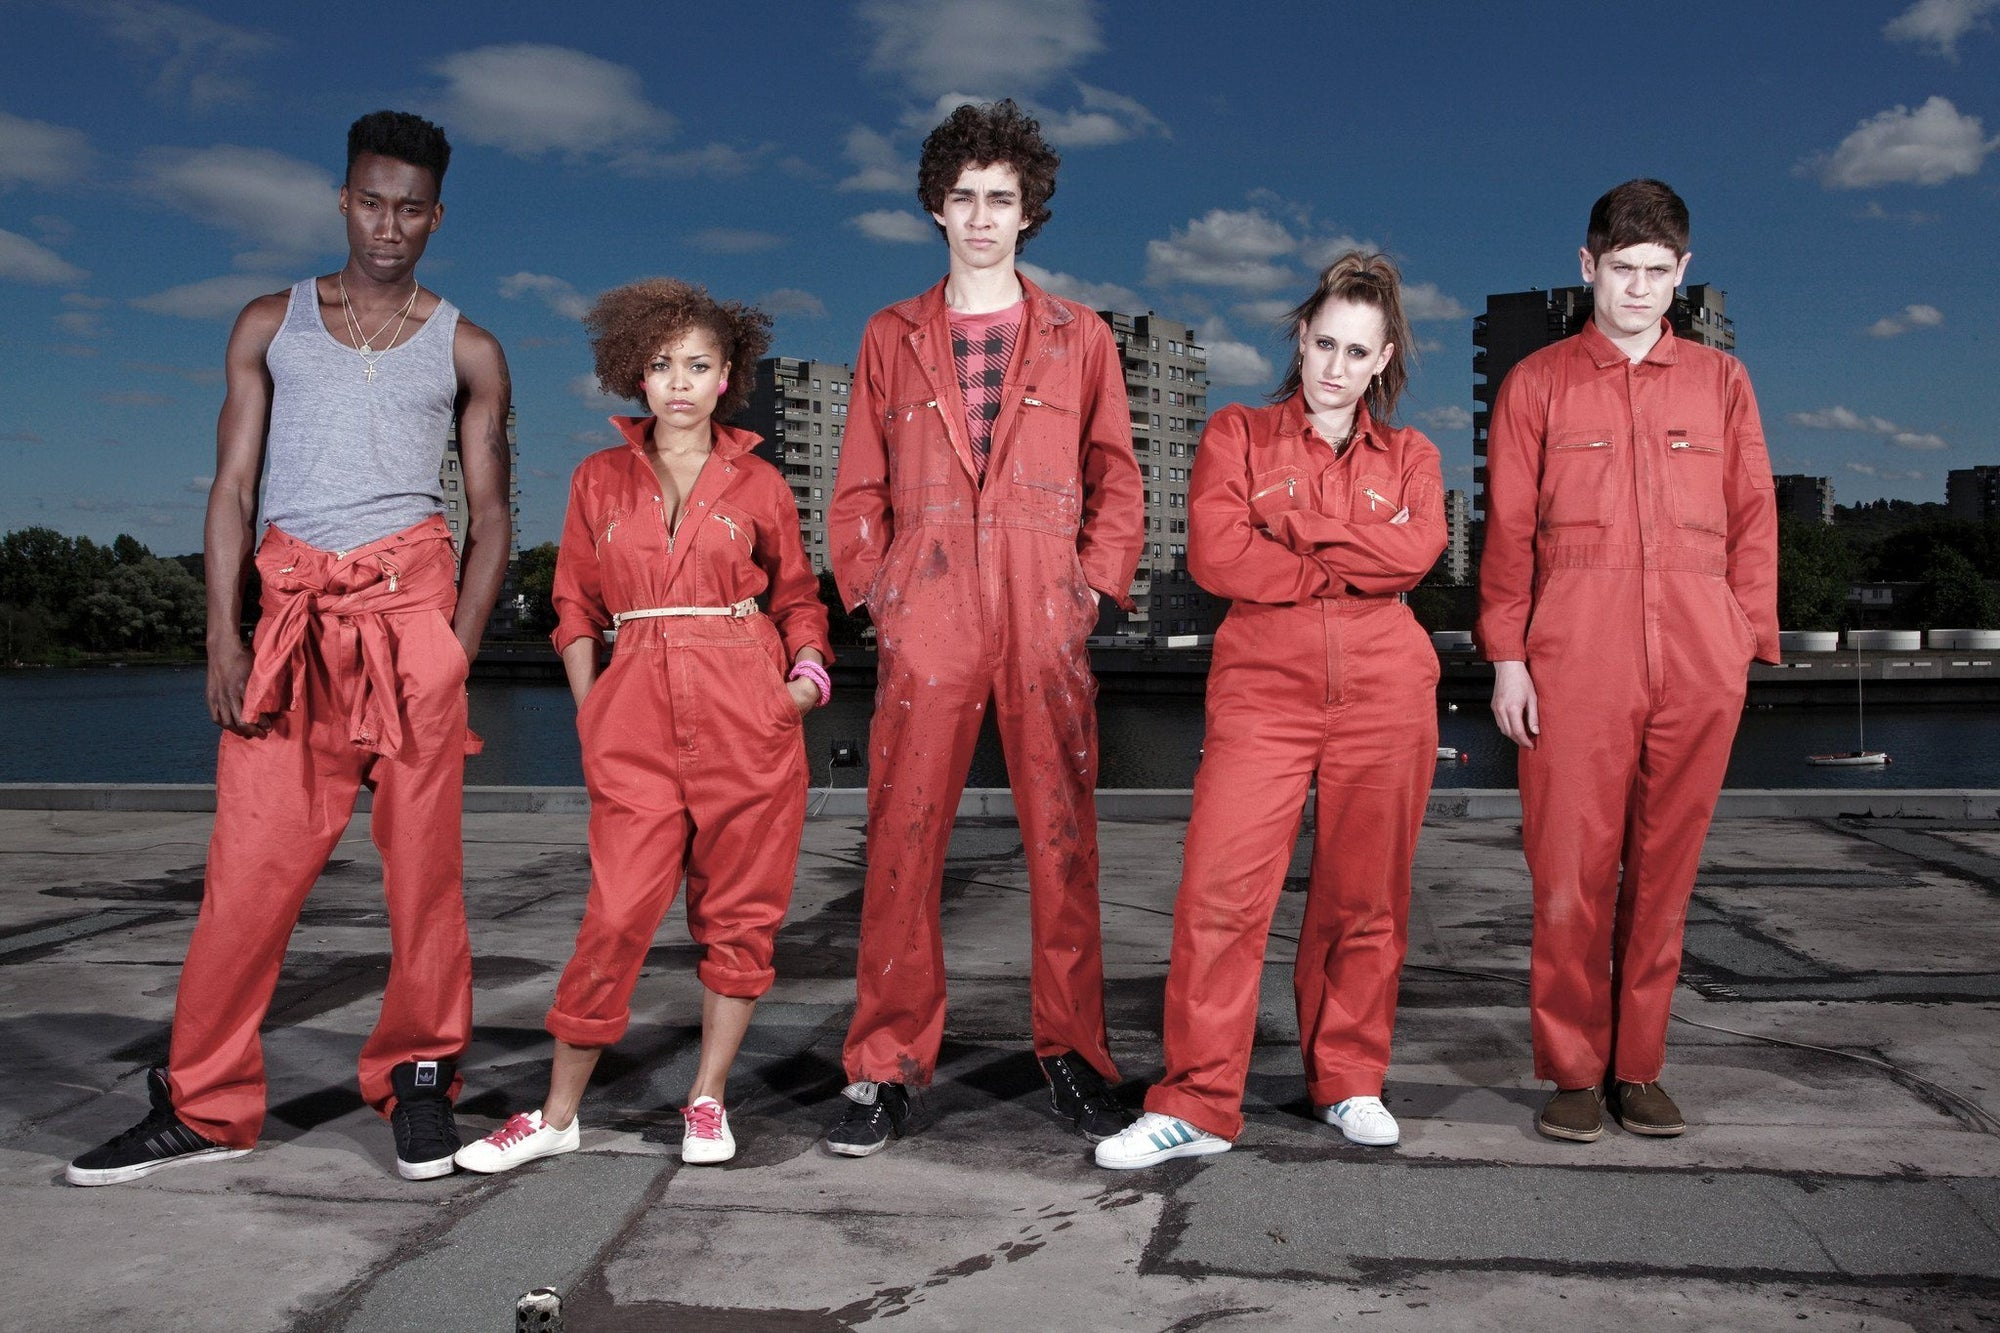 British teen drama Misfits is getting a reboot from The O.C. creator